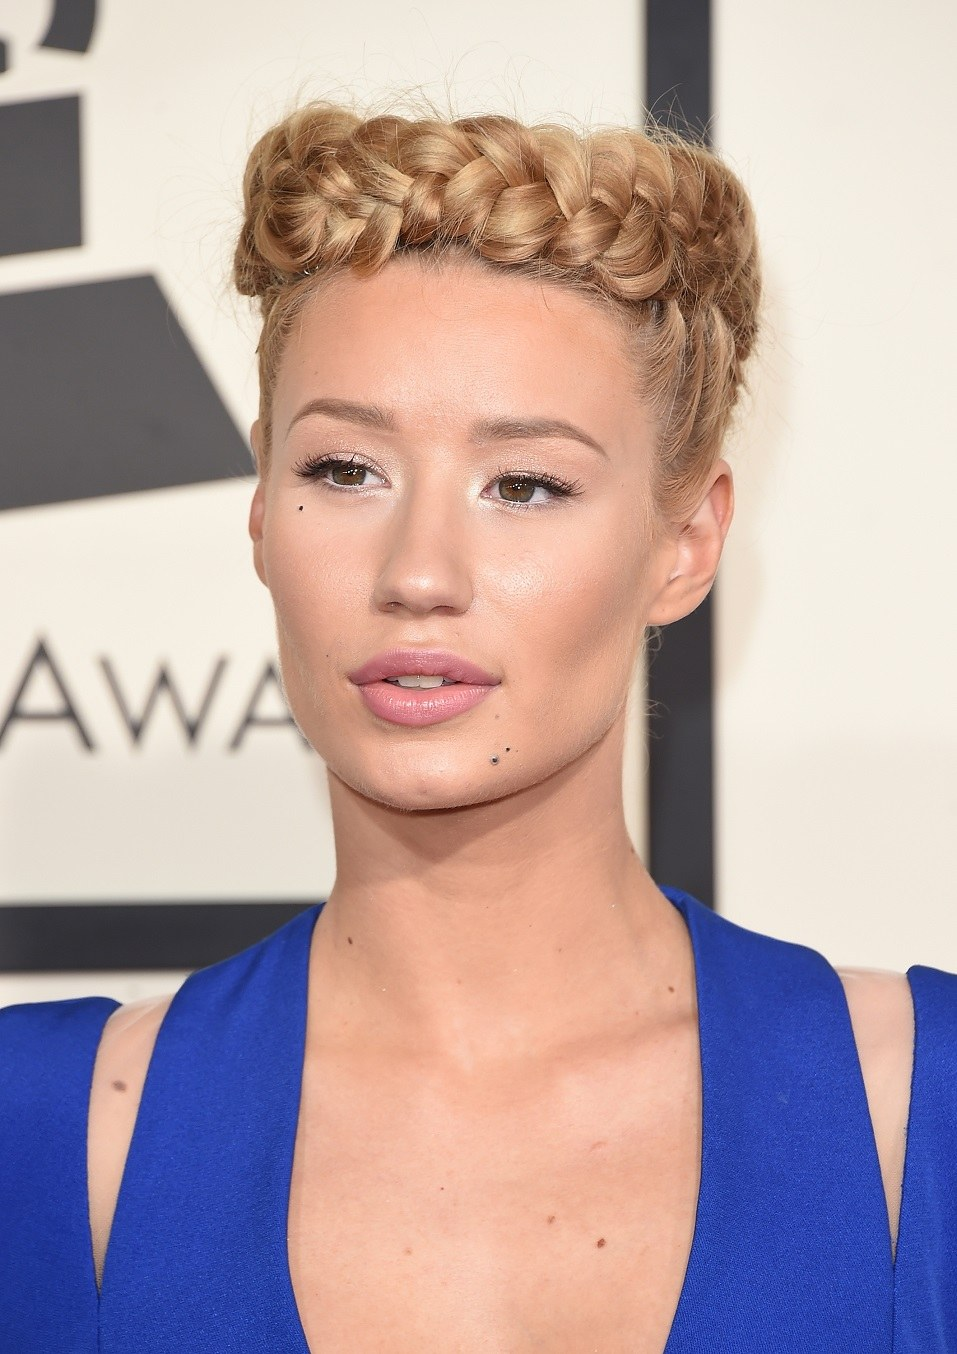 Singer Iggy Azalea attends The 57th Annual GRAMMY Awards at the STAPLES Center